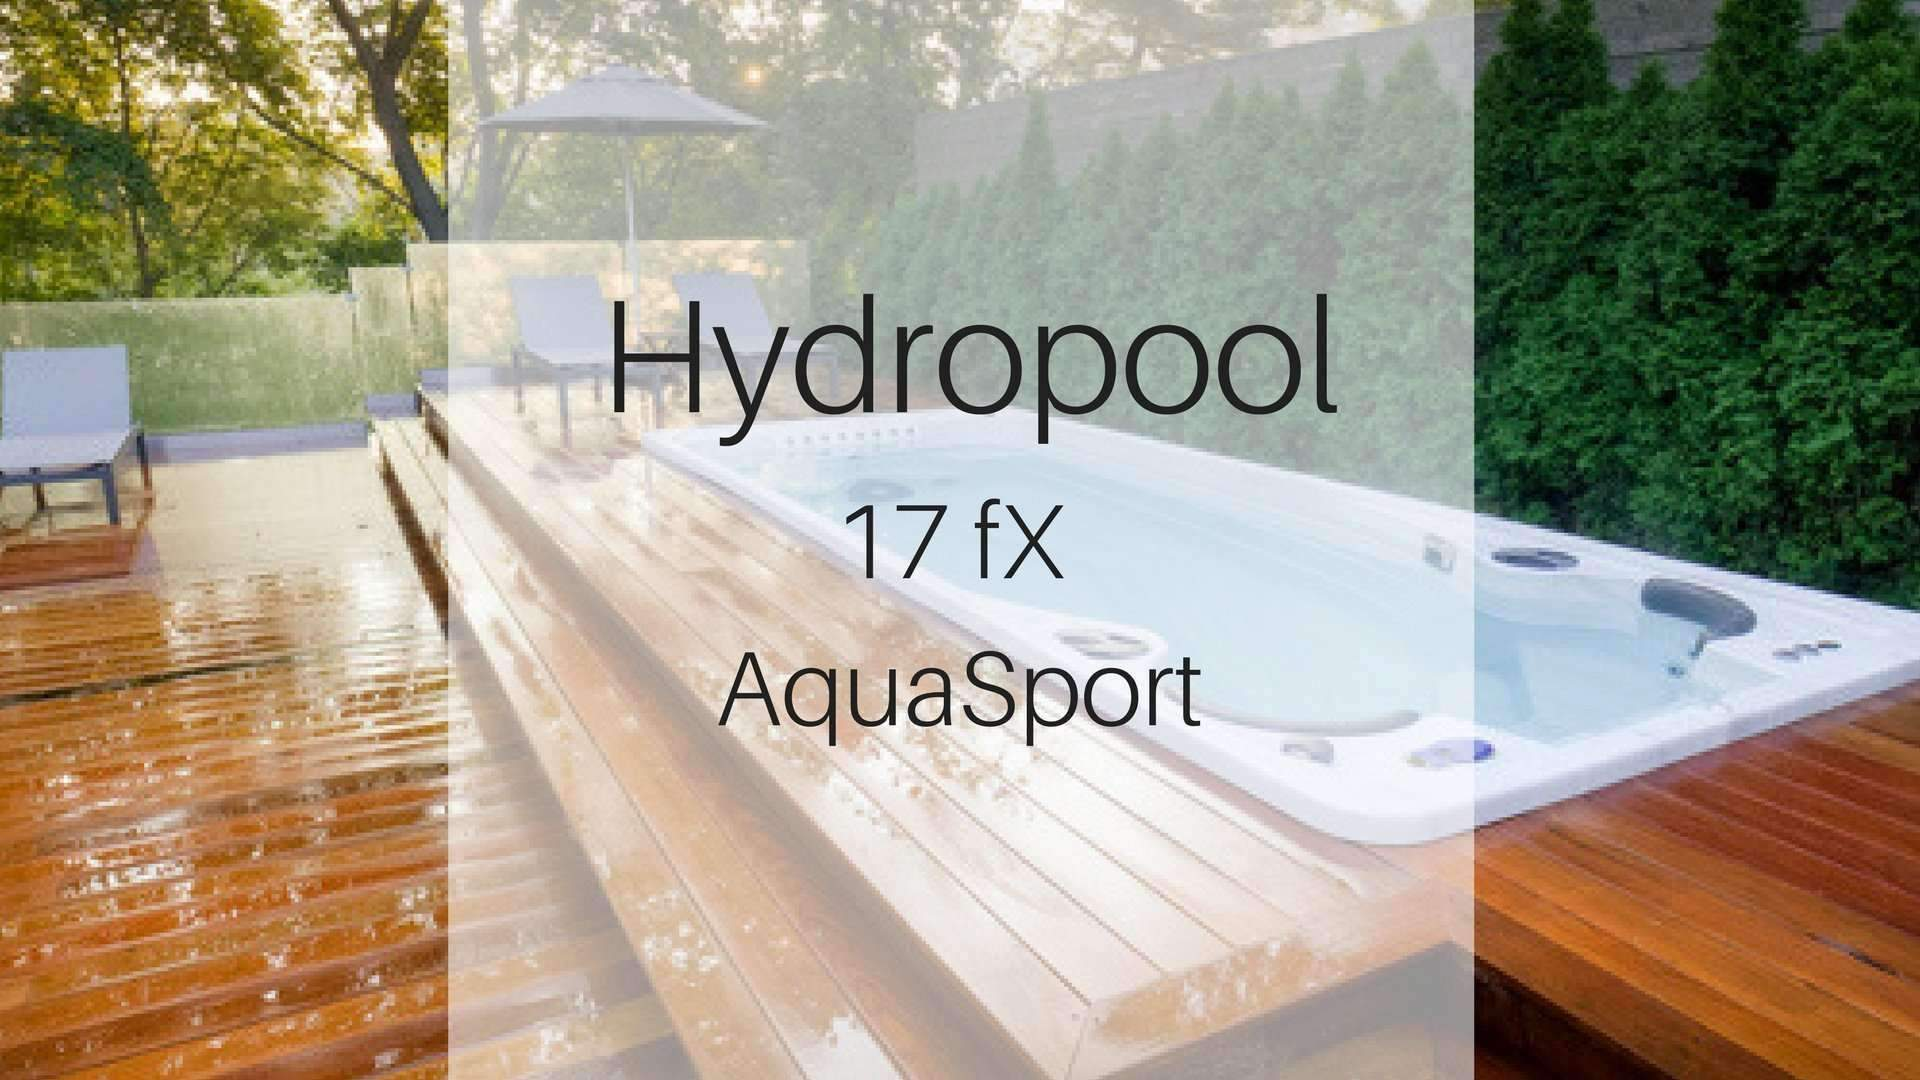 Hydropool 17fX AquaSport Swim Spa | Spa Palace